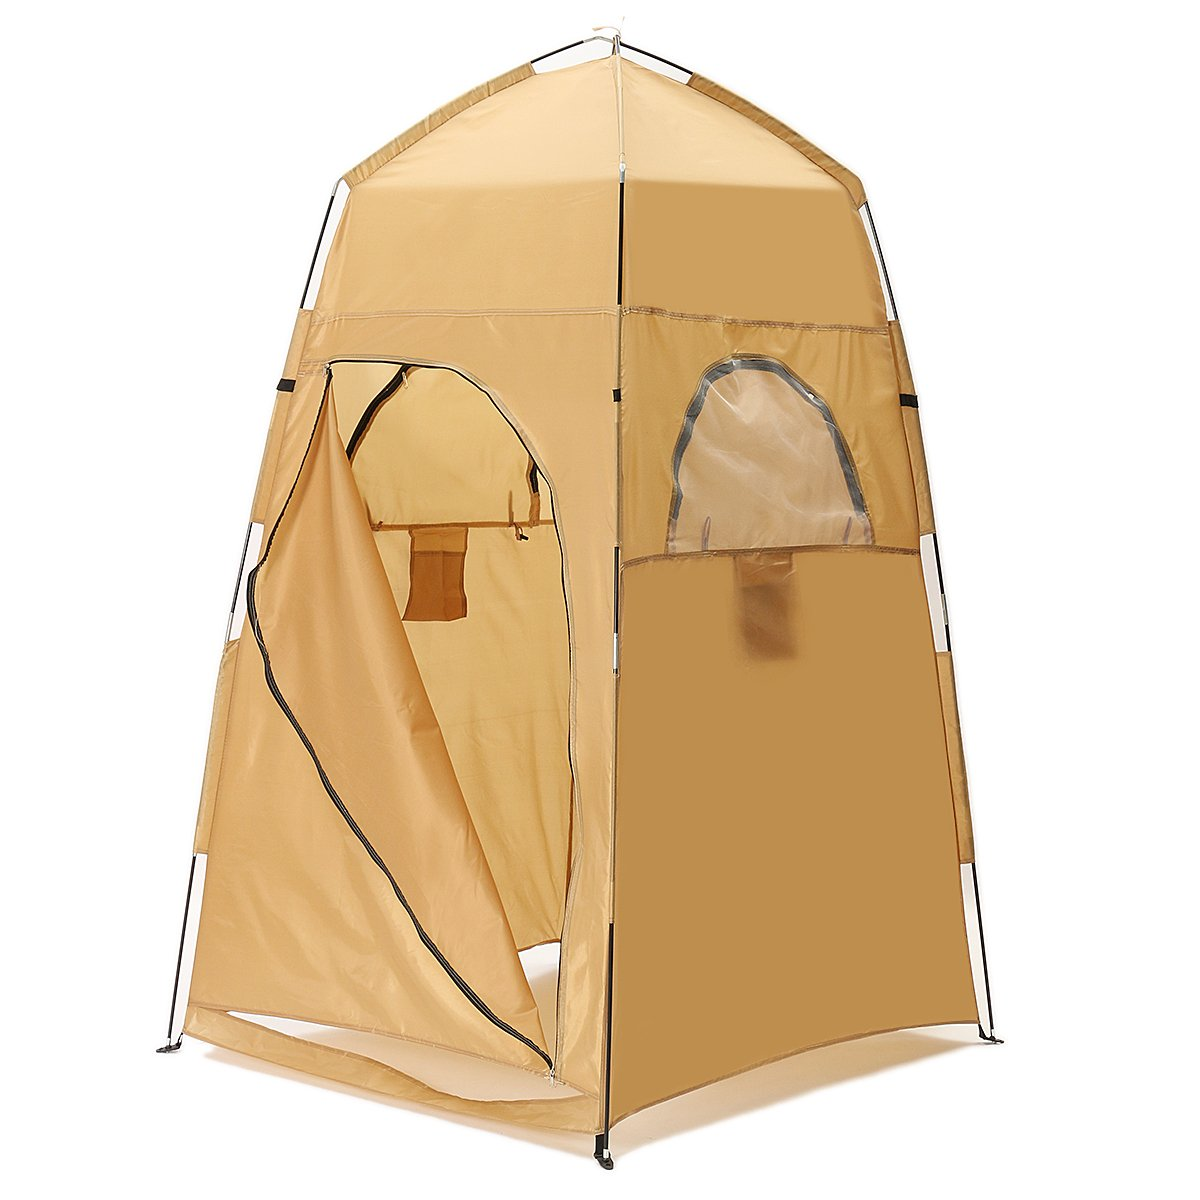 HITSAN Portable Pop-up Camping Shower Bathroom Privacy Toilet Changing Tent Outdoor Shelter One Piece